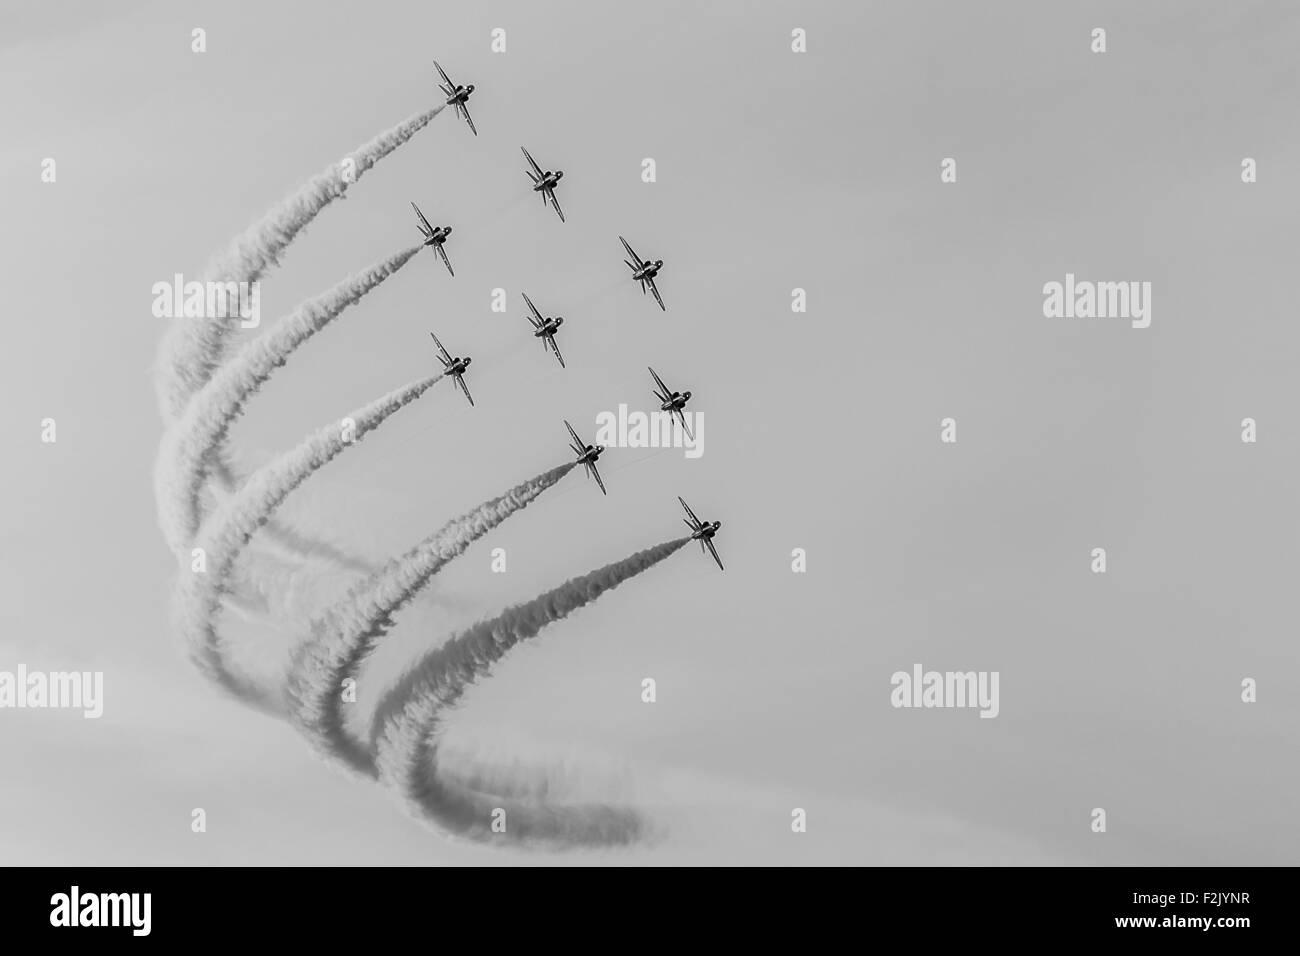 Red Arrows diamond nine formation captured in monochrome. - Stock Image